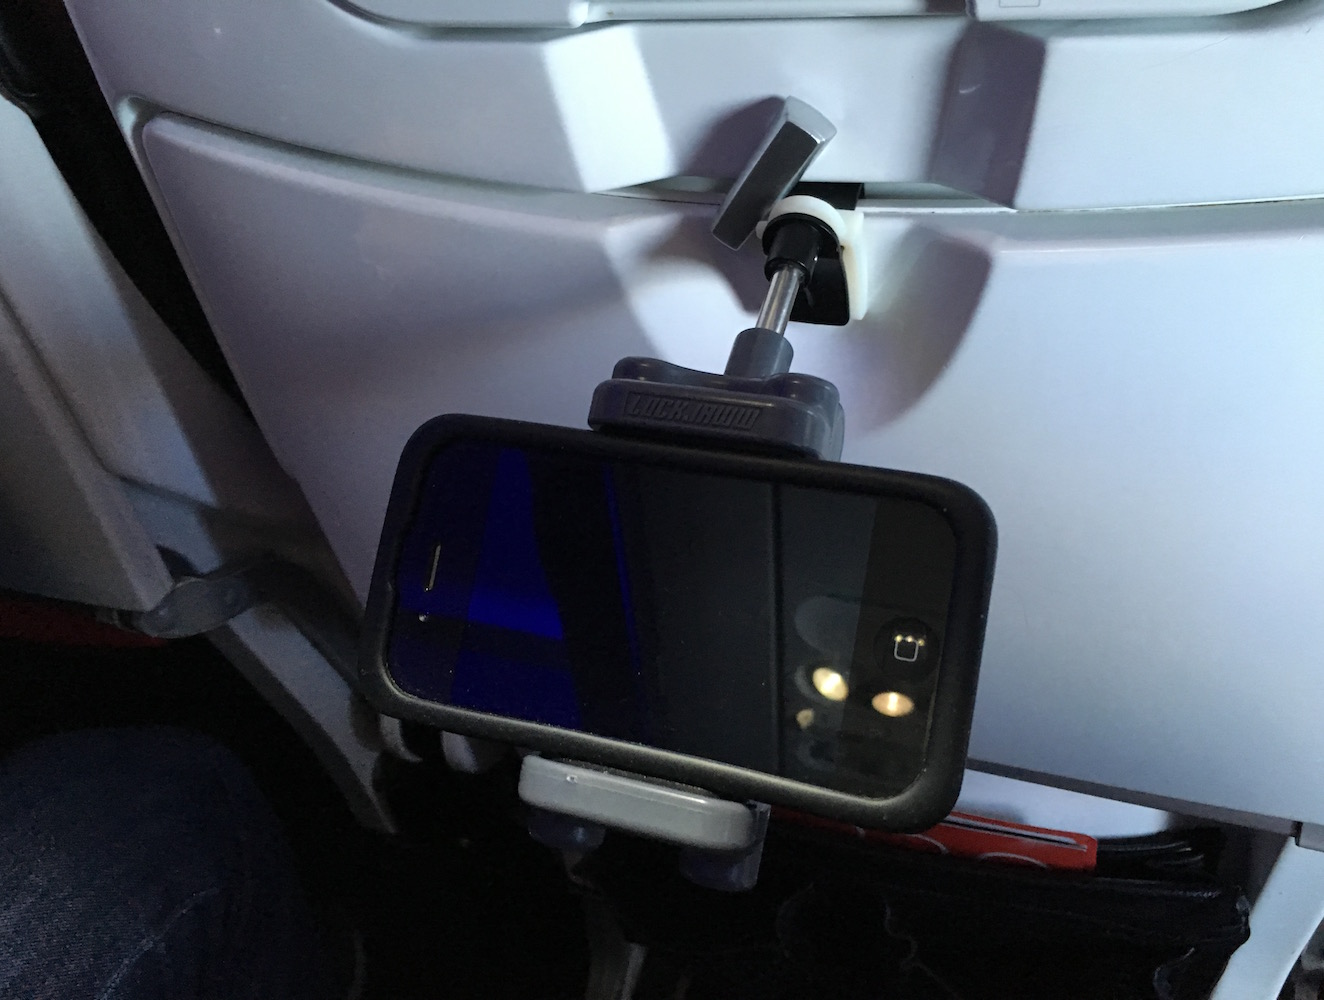 Lockjaww In-flight Mobile Device Holder